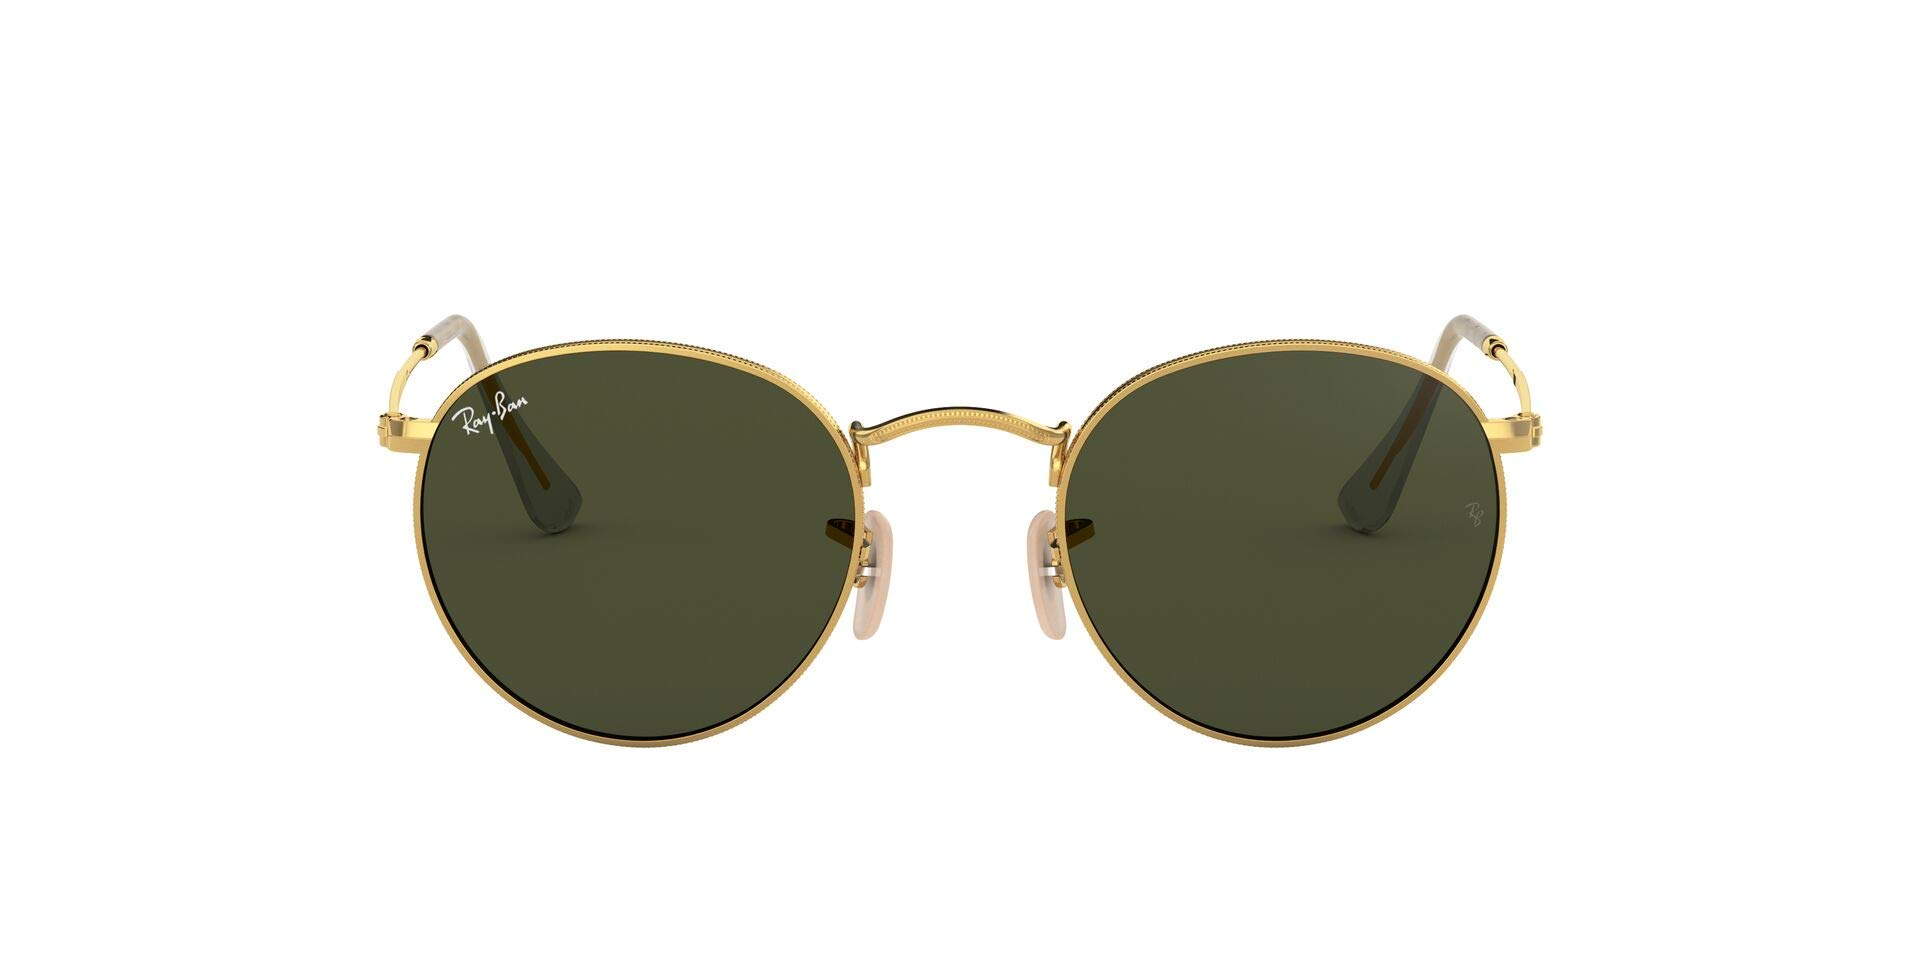 RAY-BAN RB3447N Round Flat Lenses Metal Sunglasses, Gold/Green, 53 mm by RAY-BAN